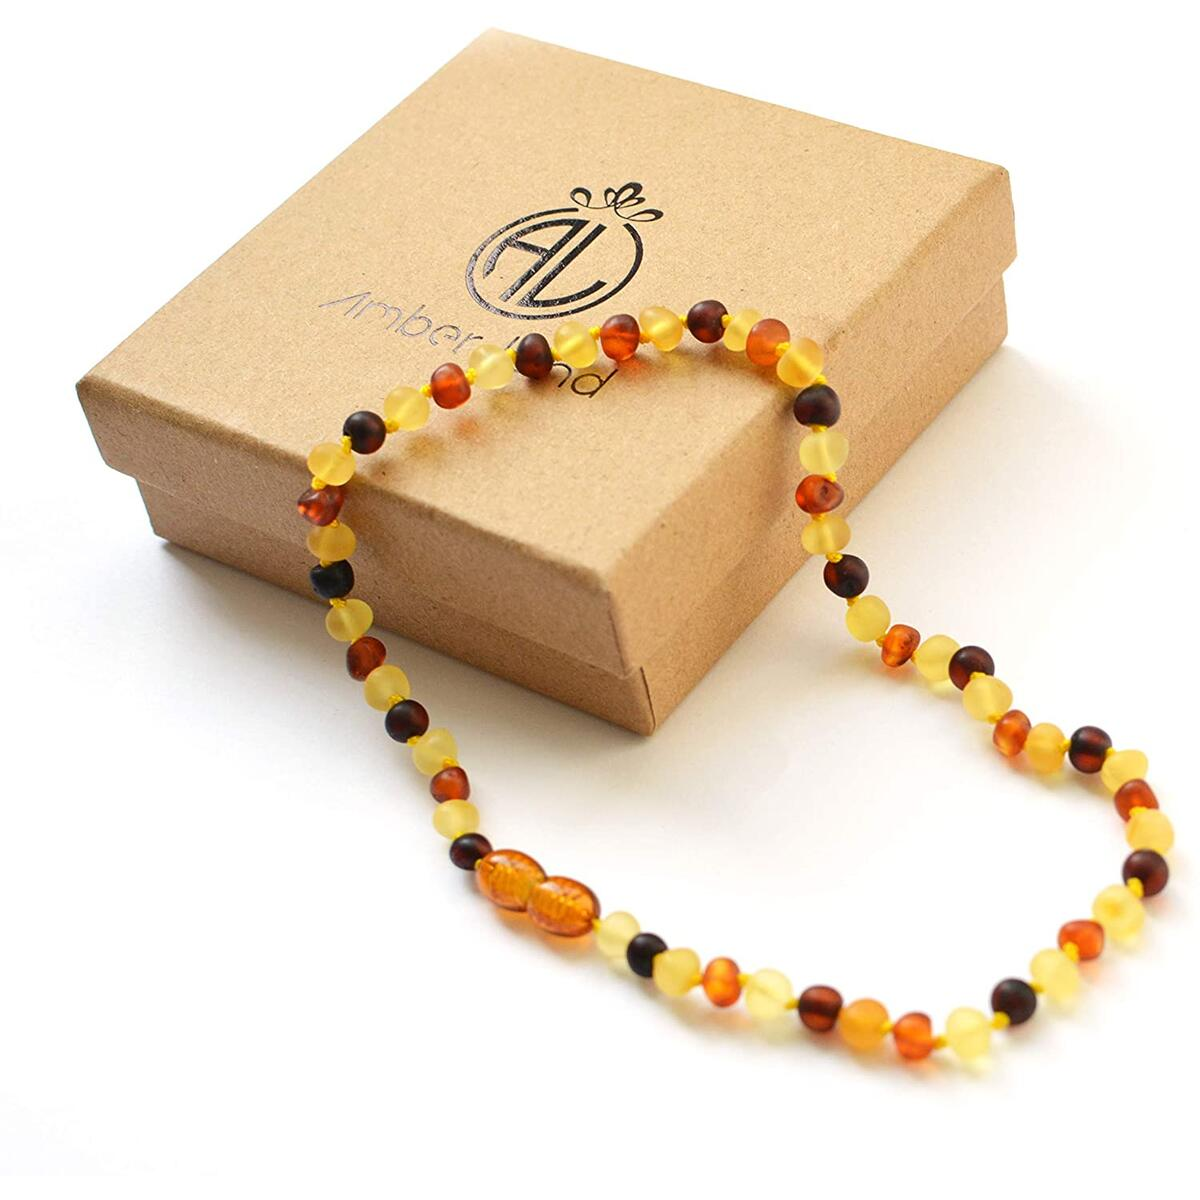 Amber Land Frosted Genuine Baltic Amber Necklace Frosted for Unisex 12.5 inch Certificated Natural Baltic Amber